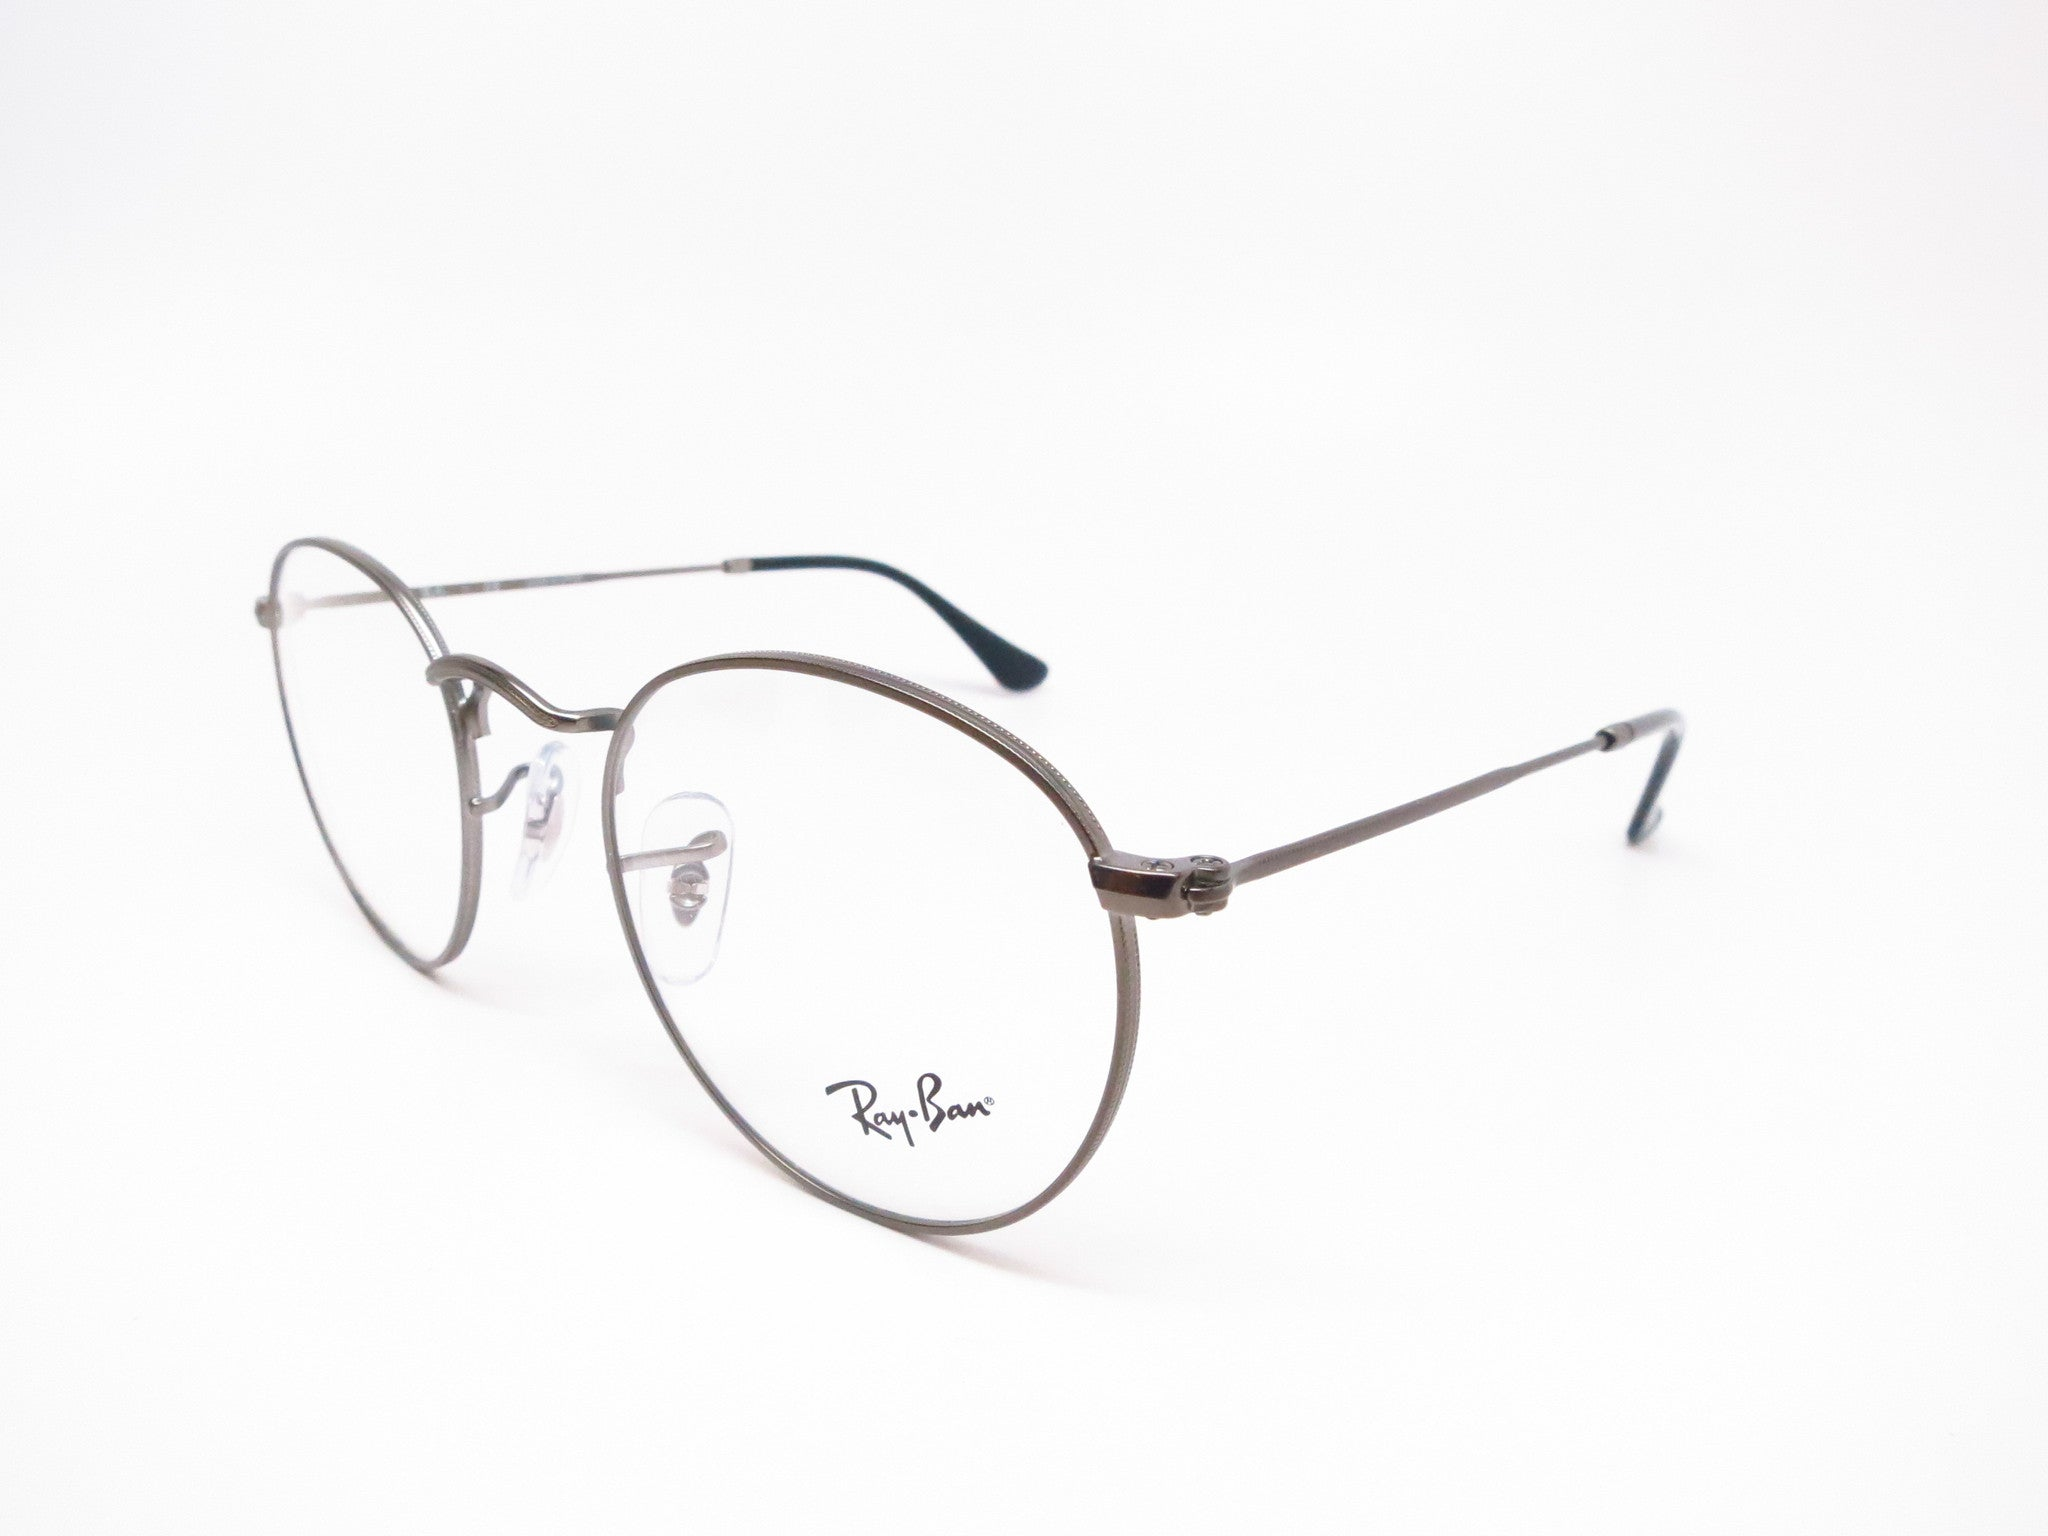 ray ban eyeglasses sale  ray ban rb 3447v 2620 matte gunmetal eyeglasses eye heart shades ray